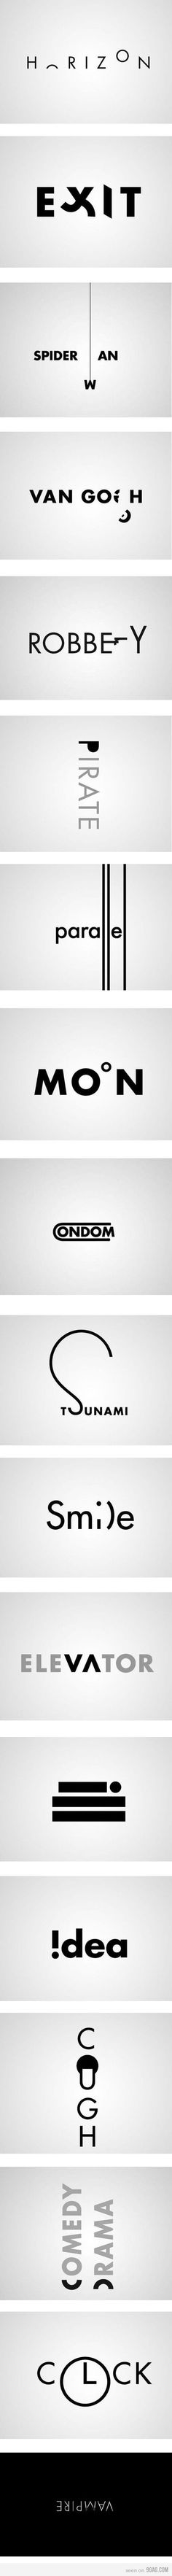 Logos that depict the meaning of the word.